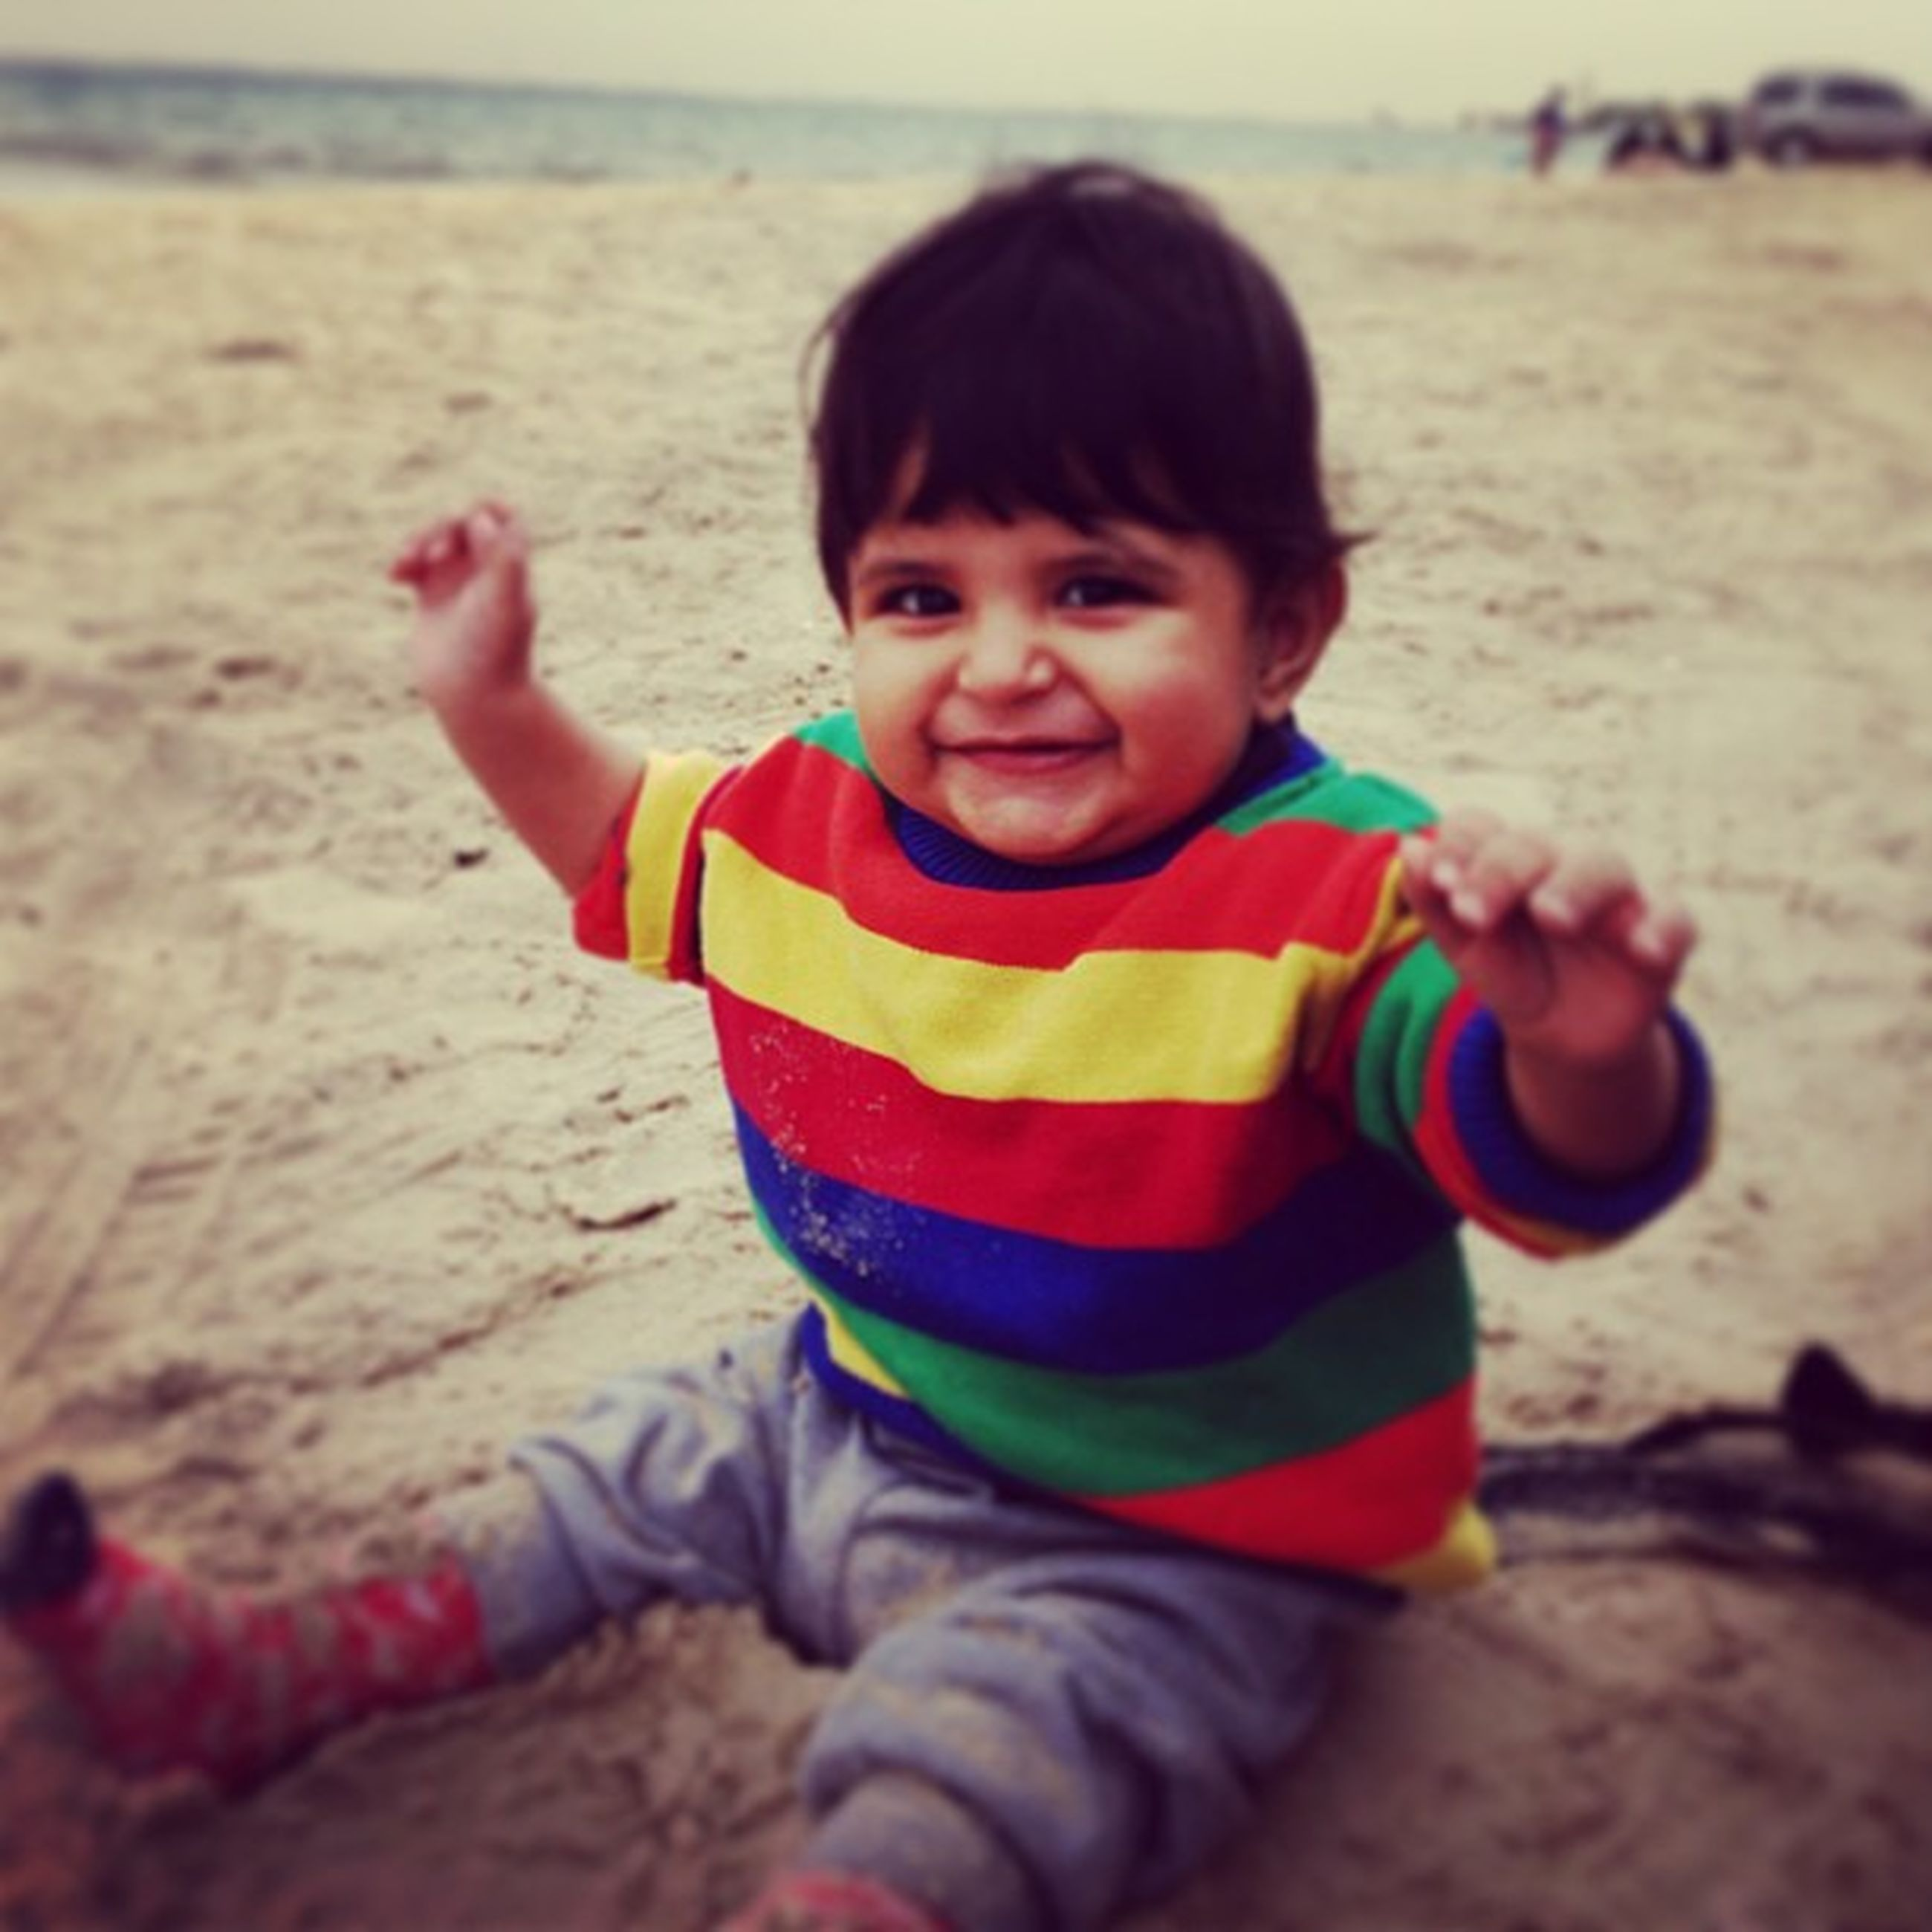 childhood, elementary age, innocence, cute, boys, girls, person, leisure activity, beach, lifestyles, sand, looking at camera, portrait, casual clothing, smiling, playful, playing, preschool age